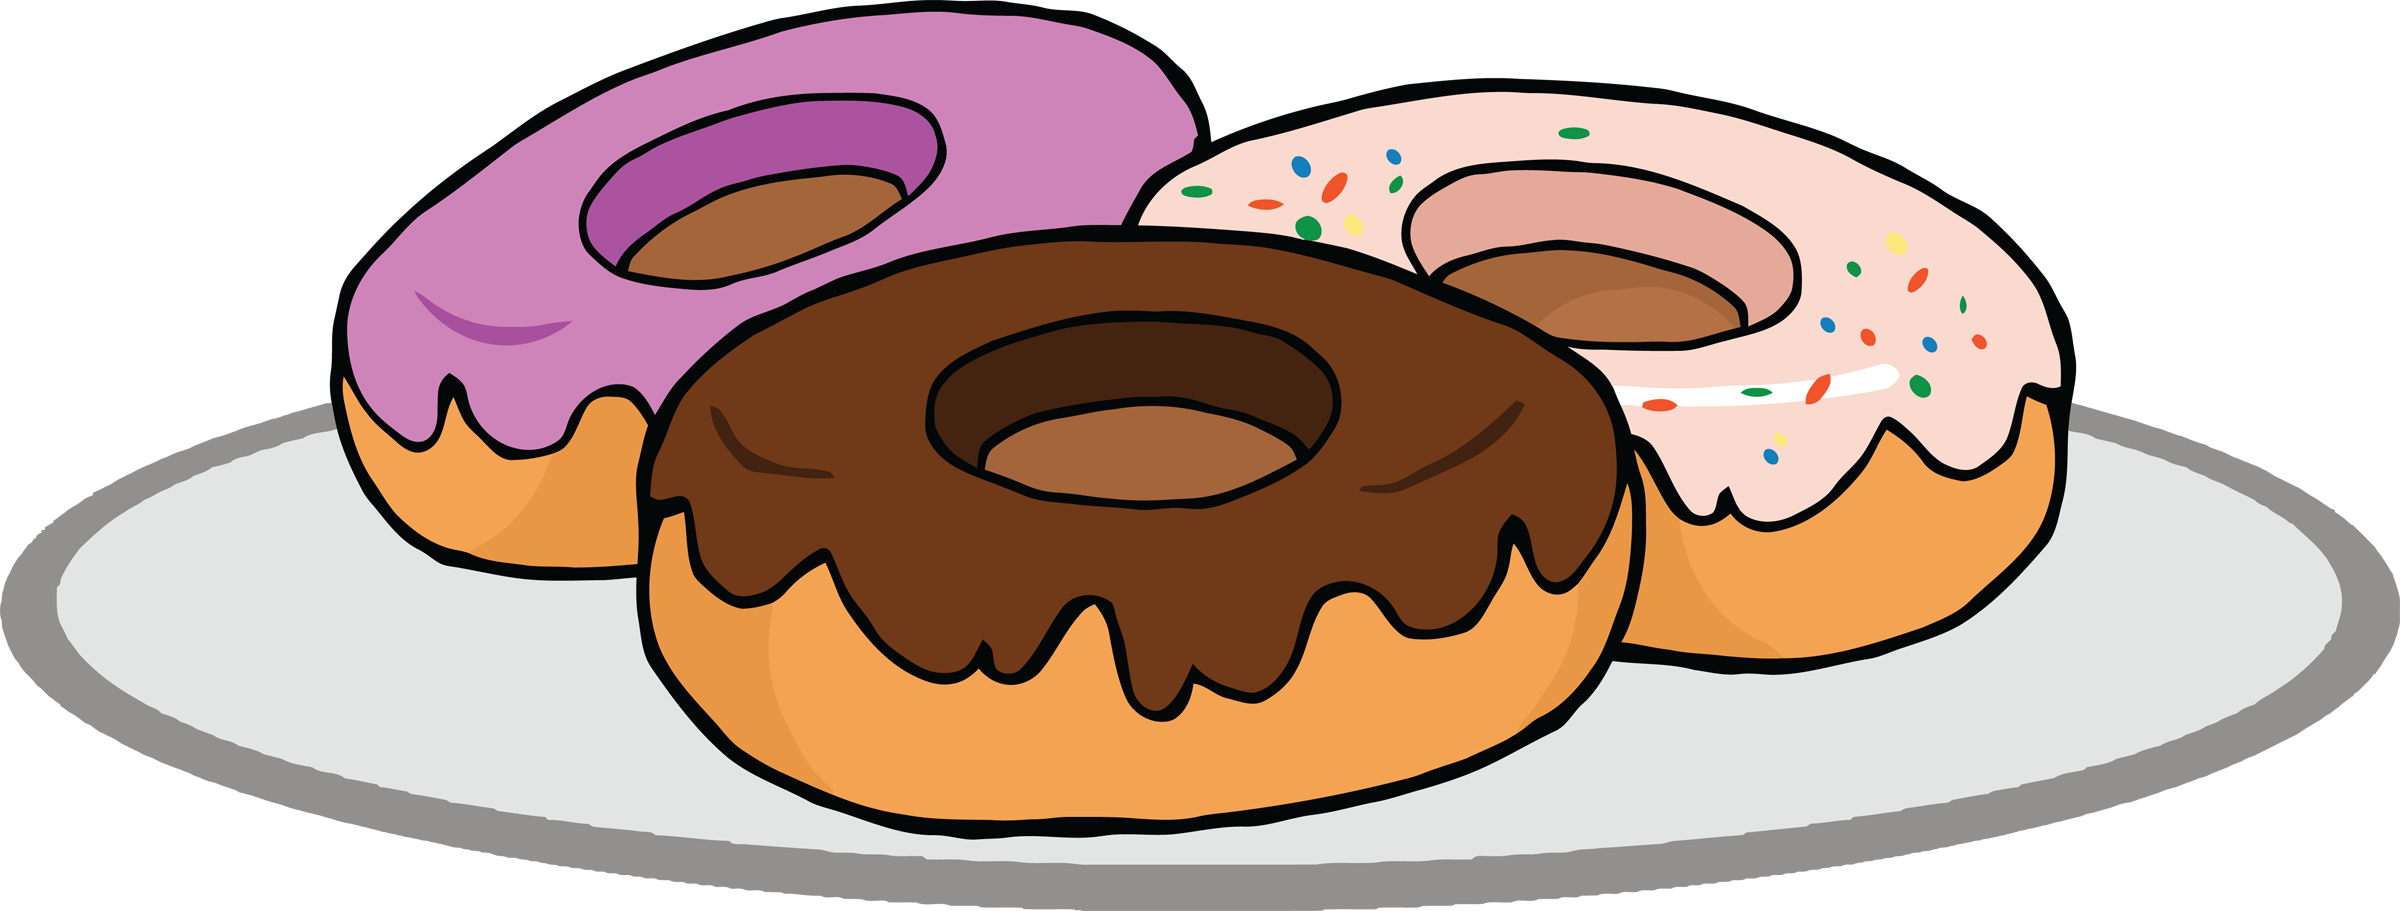 Donuts Pictures Cliparts Co-Donuts Pictures Cliparts Co-8